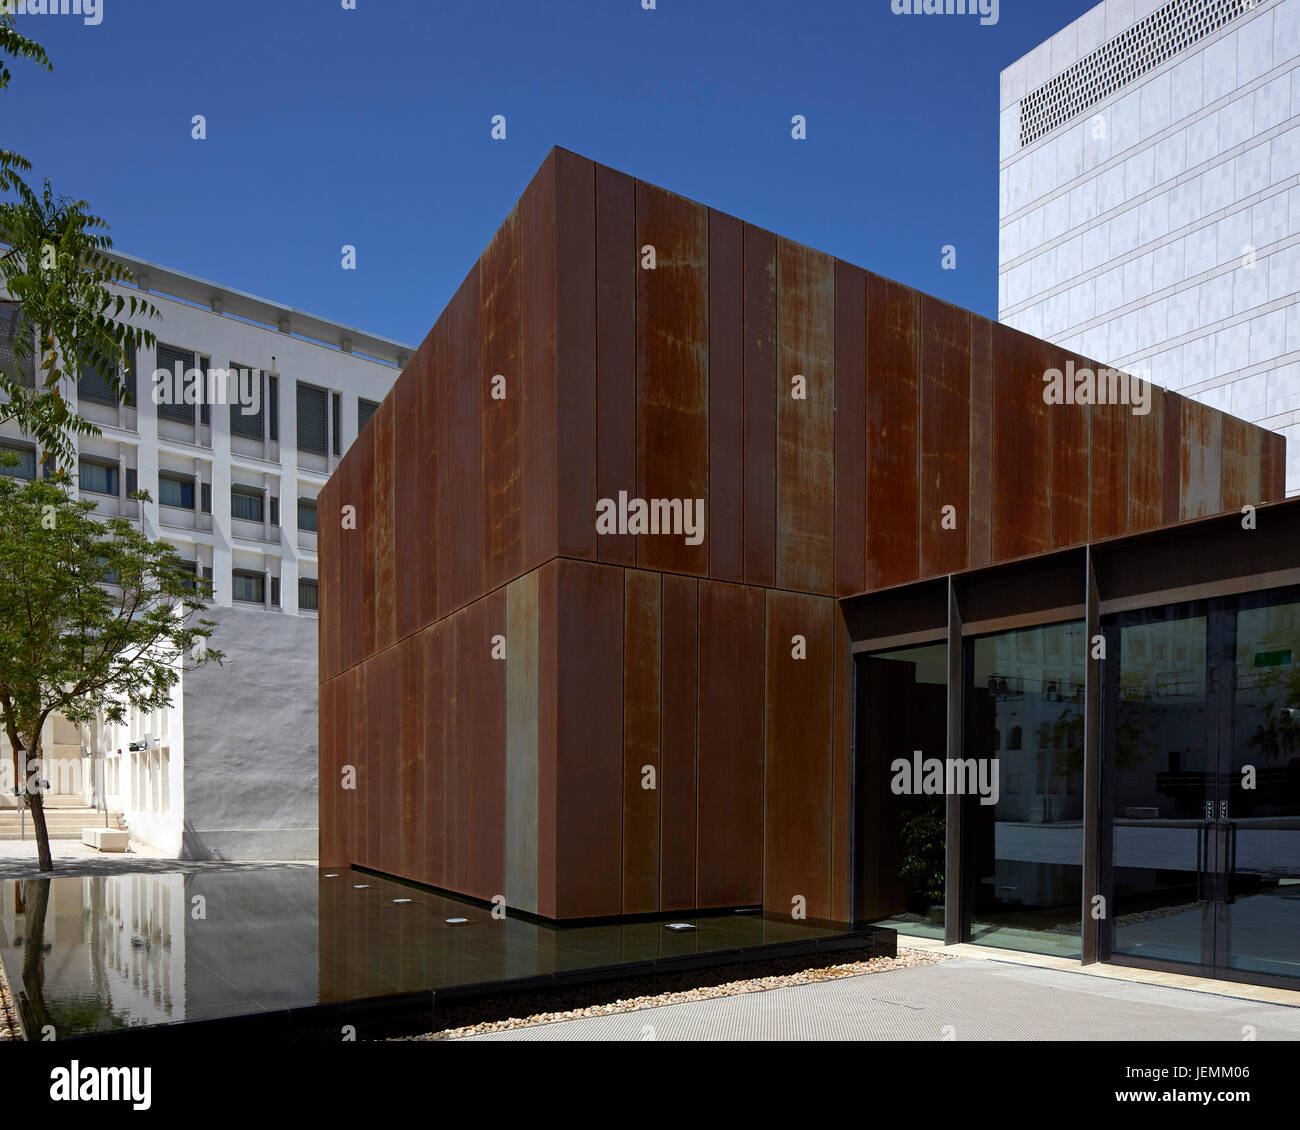 Side view showing Corten steel cube over water feature